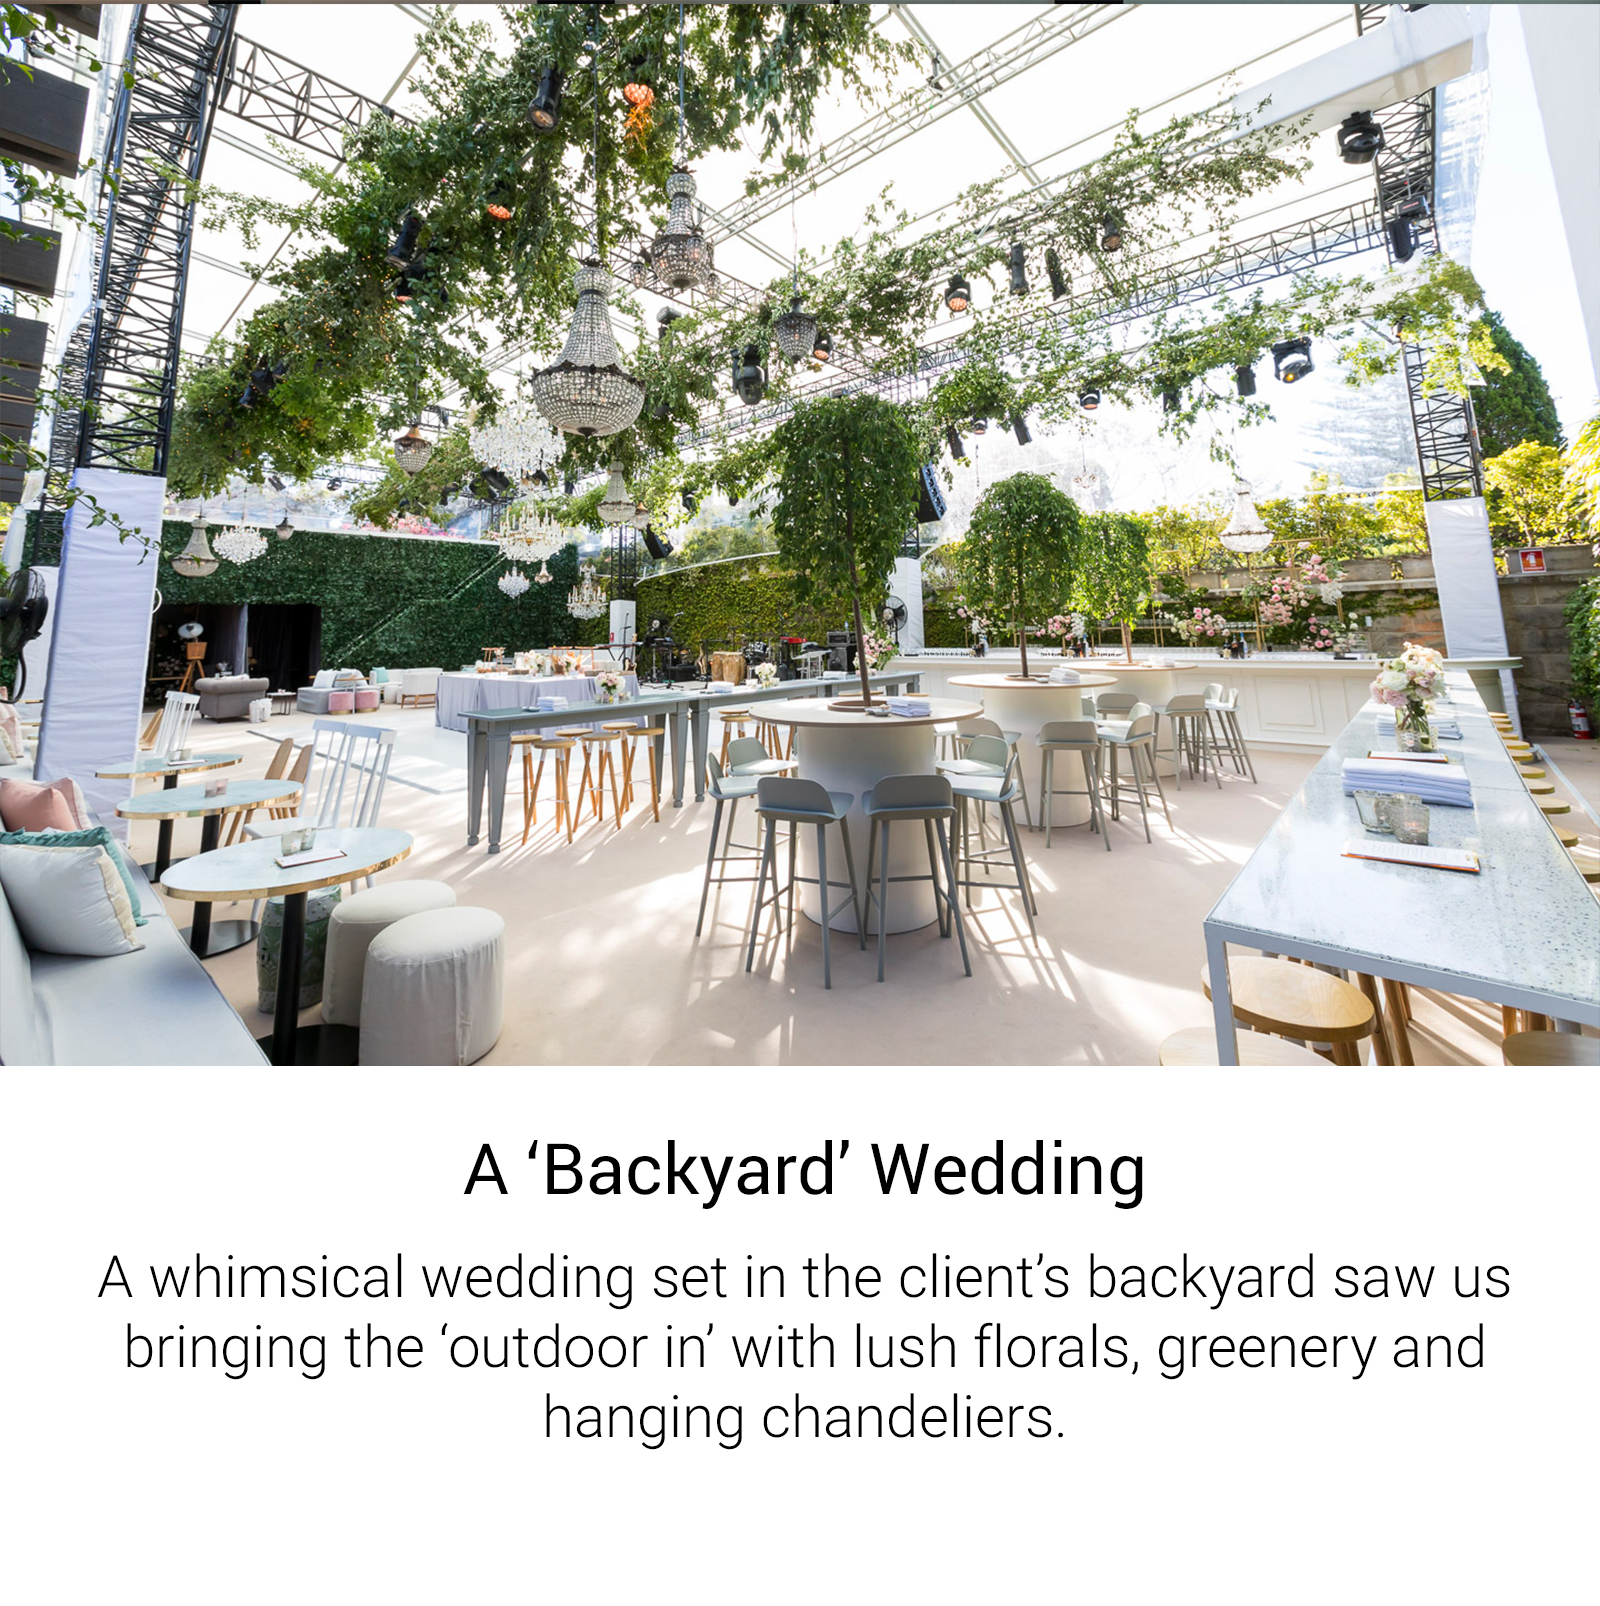 A 'Backyard' Wedding